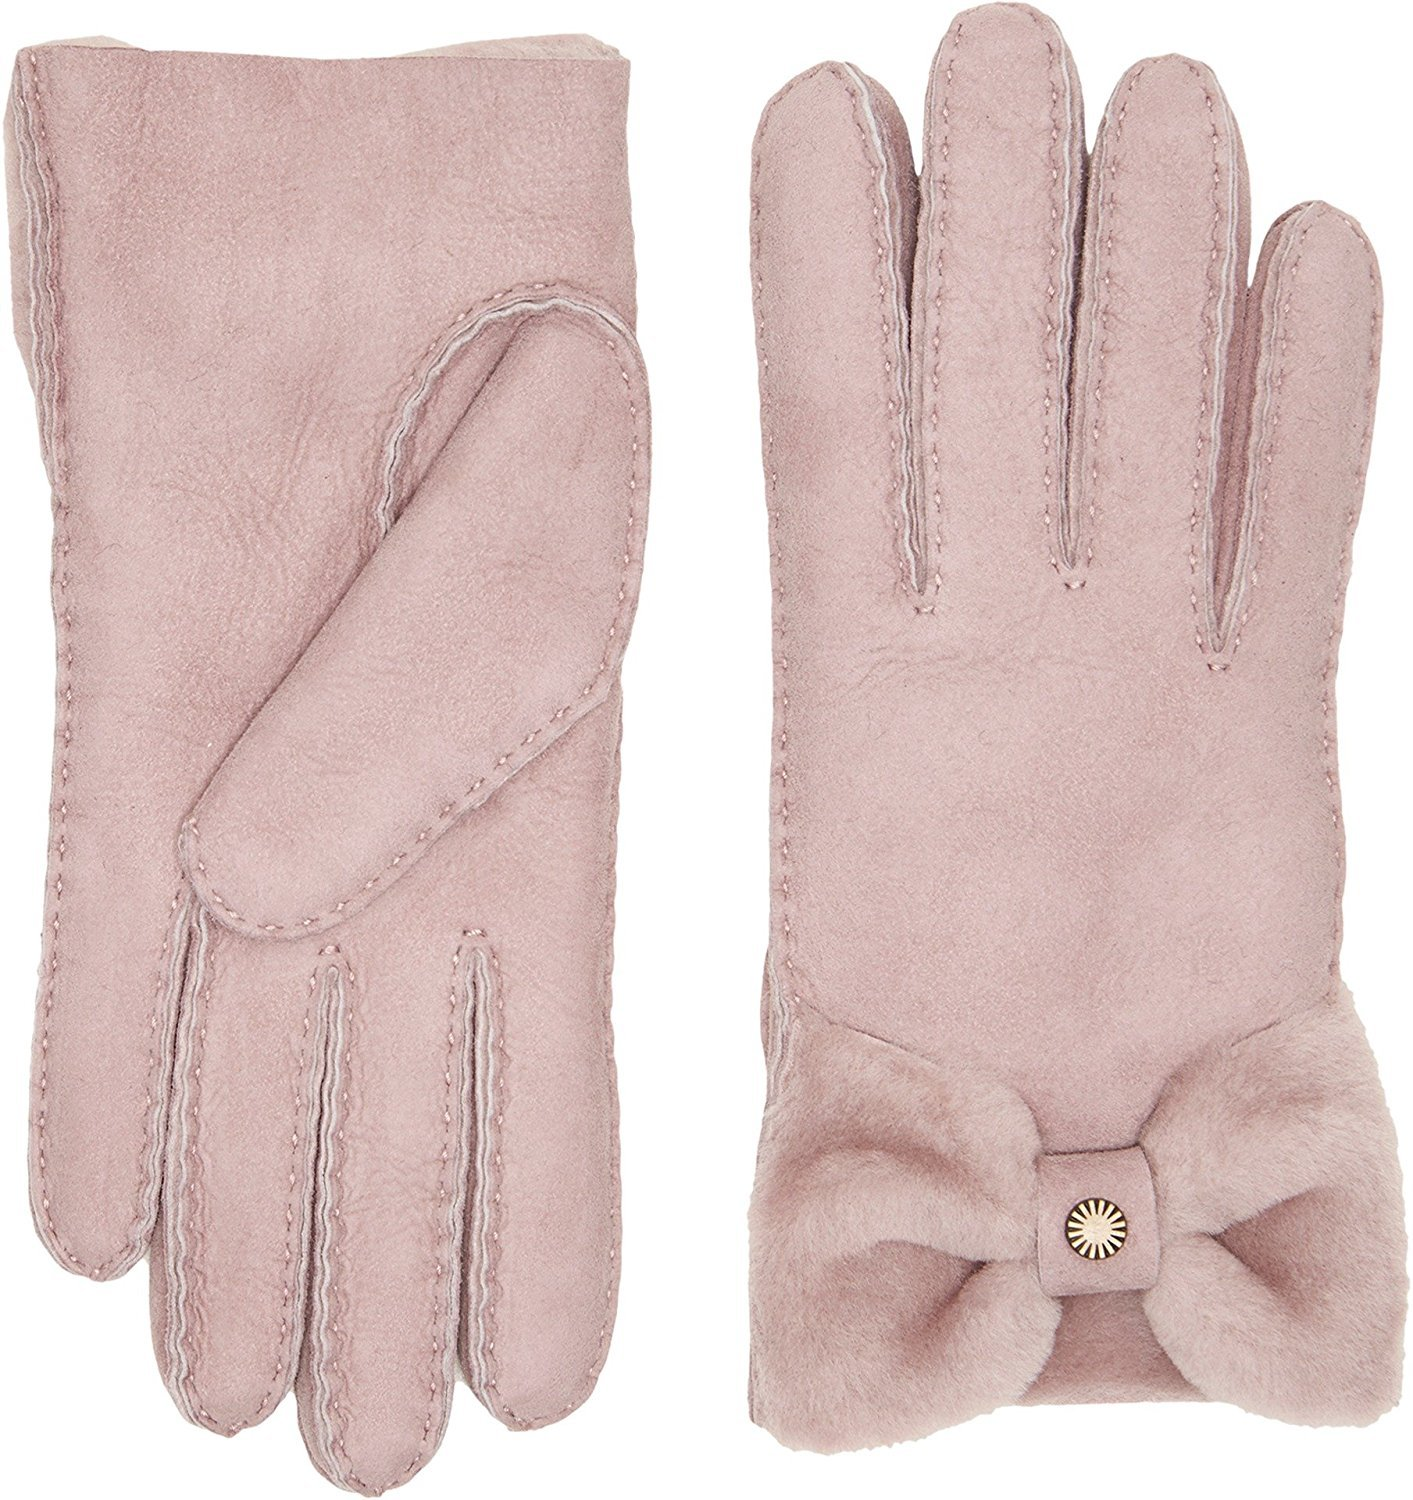 UGG Women's Bow Waterproof Sheepskin Gloves Dusk MD by UGG